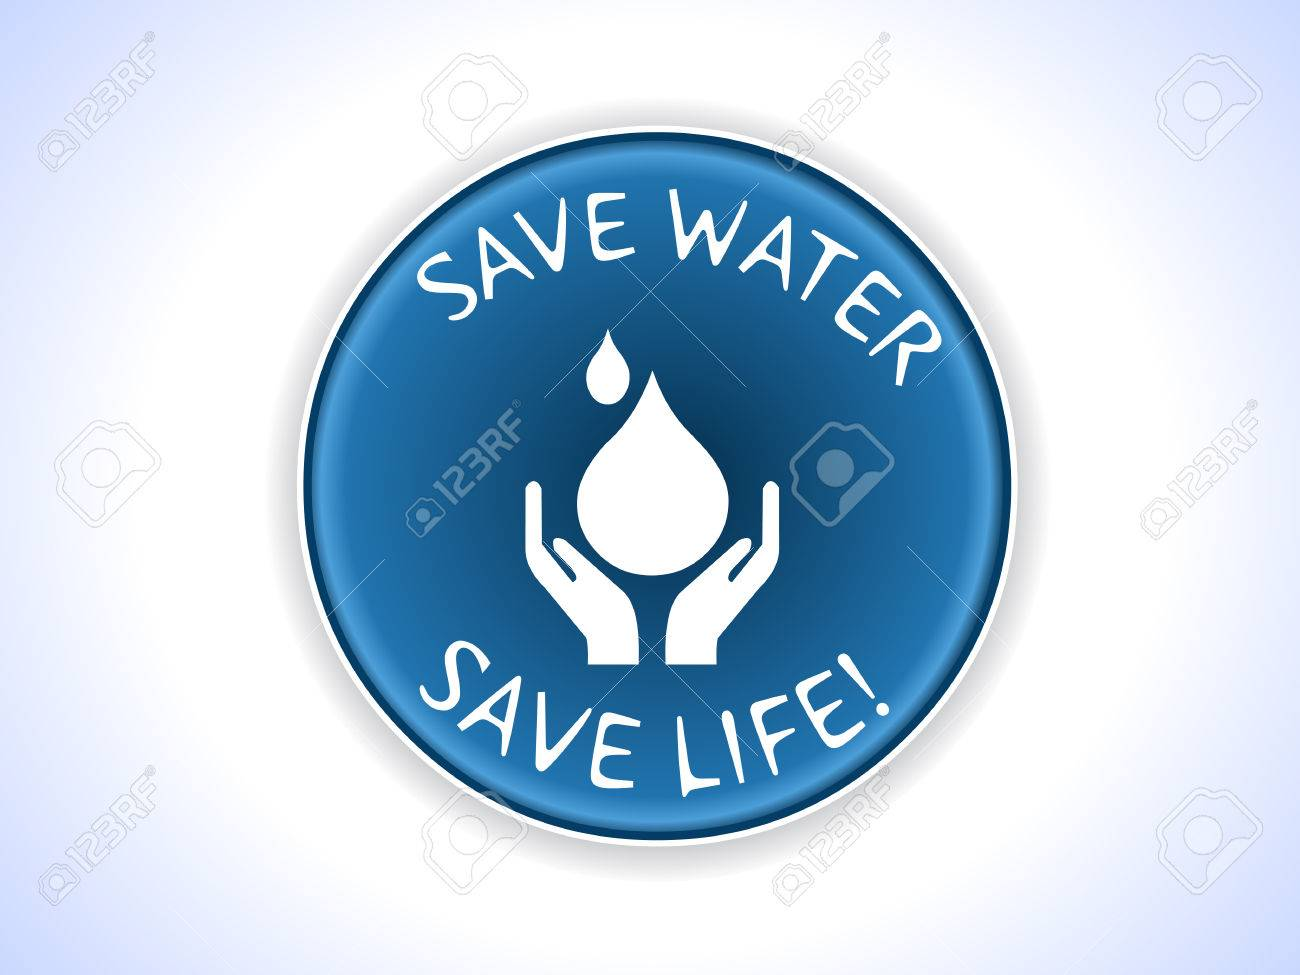 Image result for Images for showing water